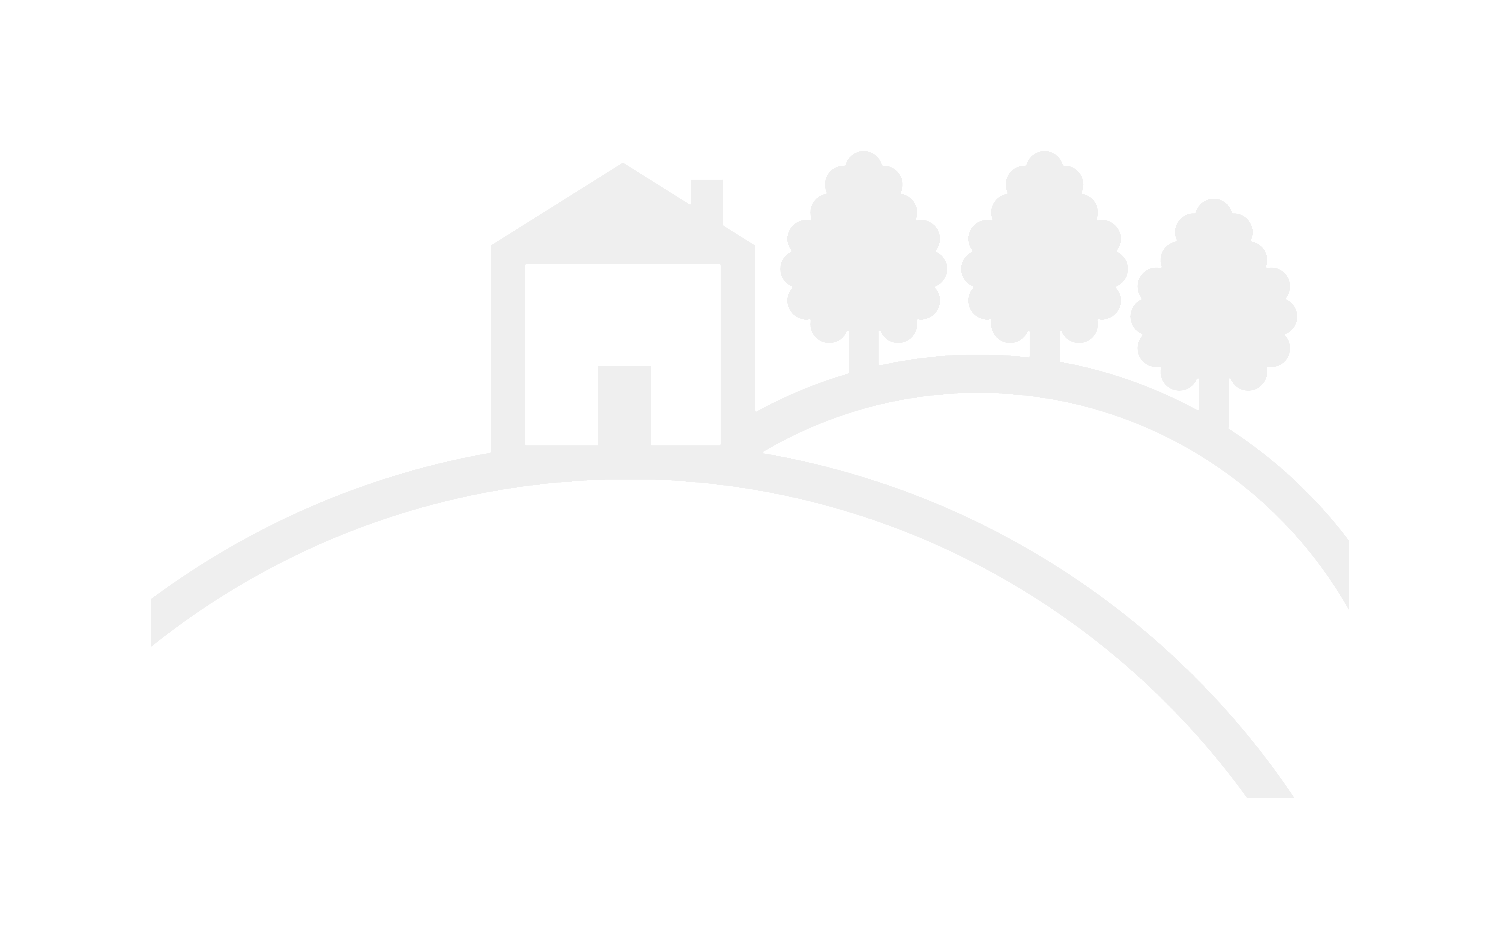 Berkshire summer music